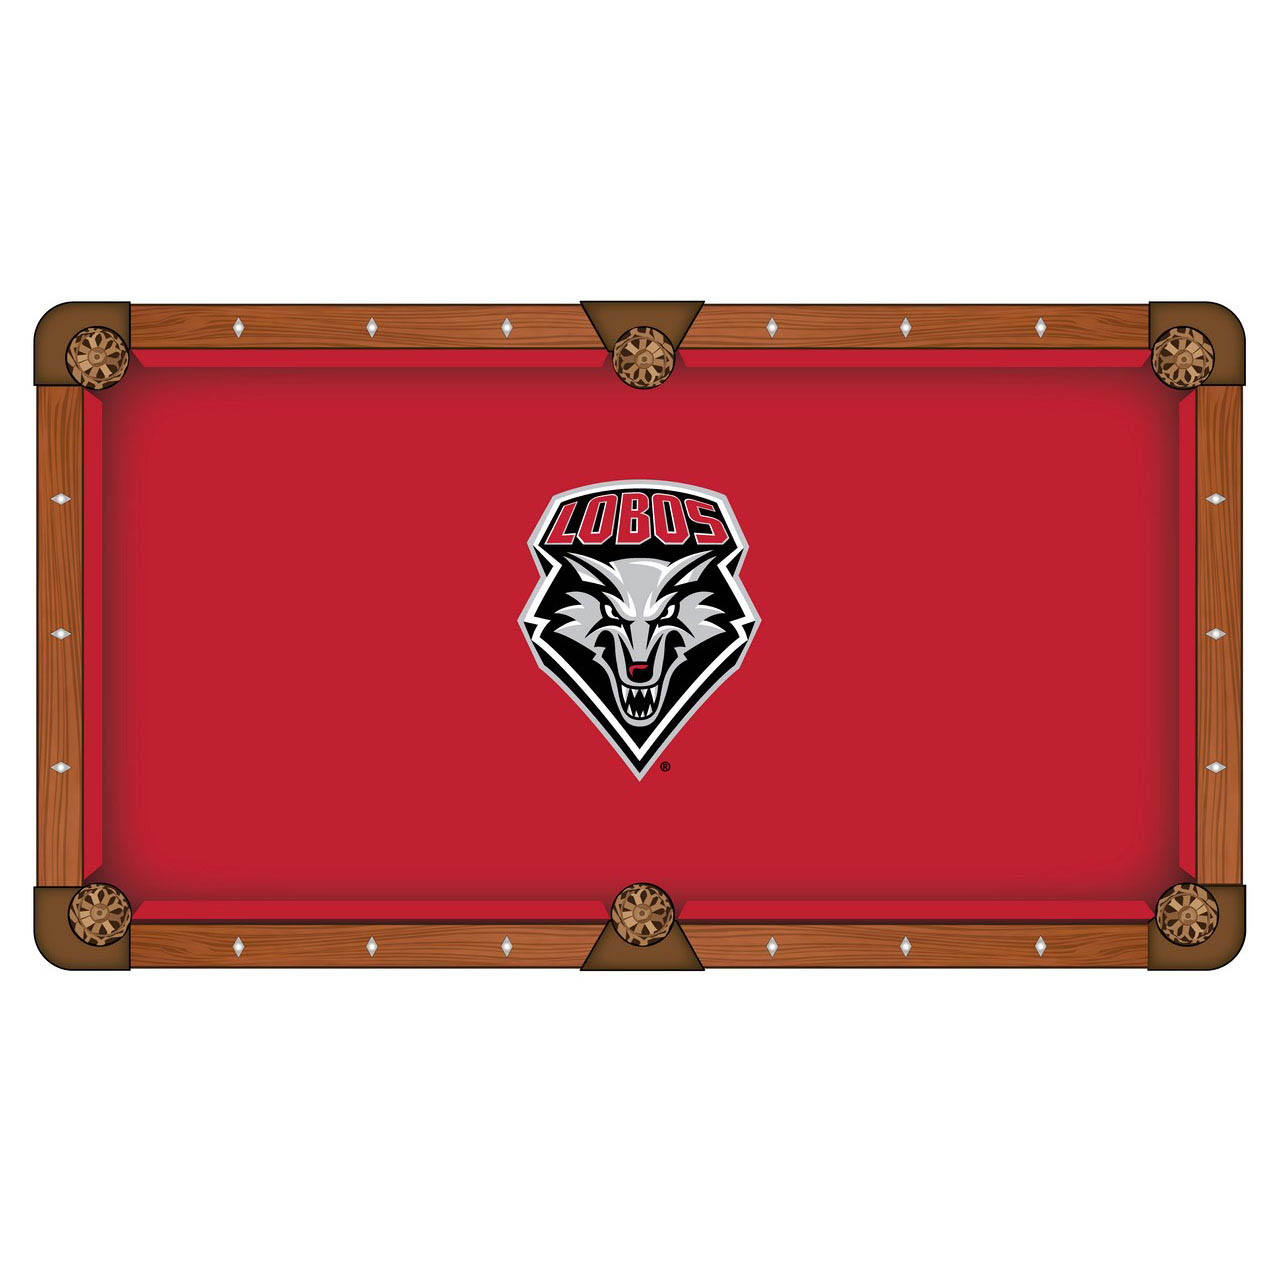 Serious University Mexico Pool Table Cloth Product Photo